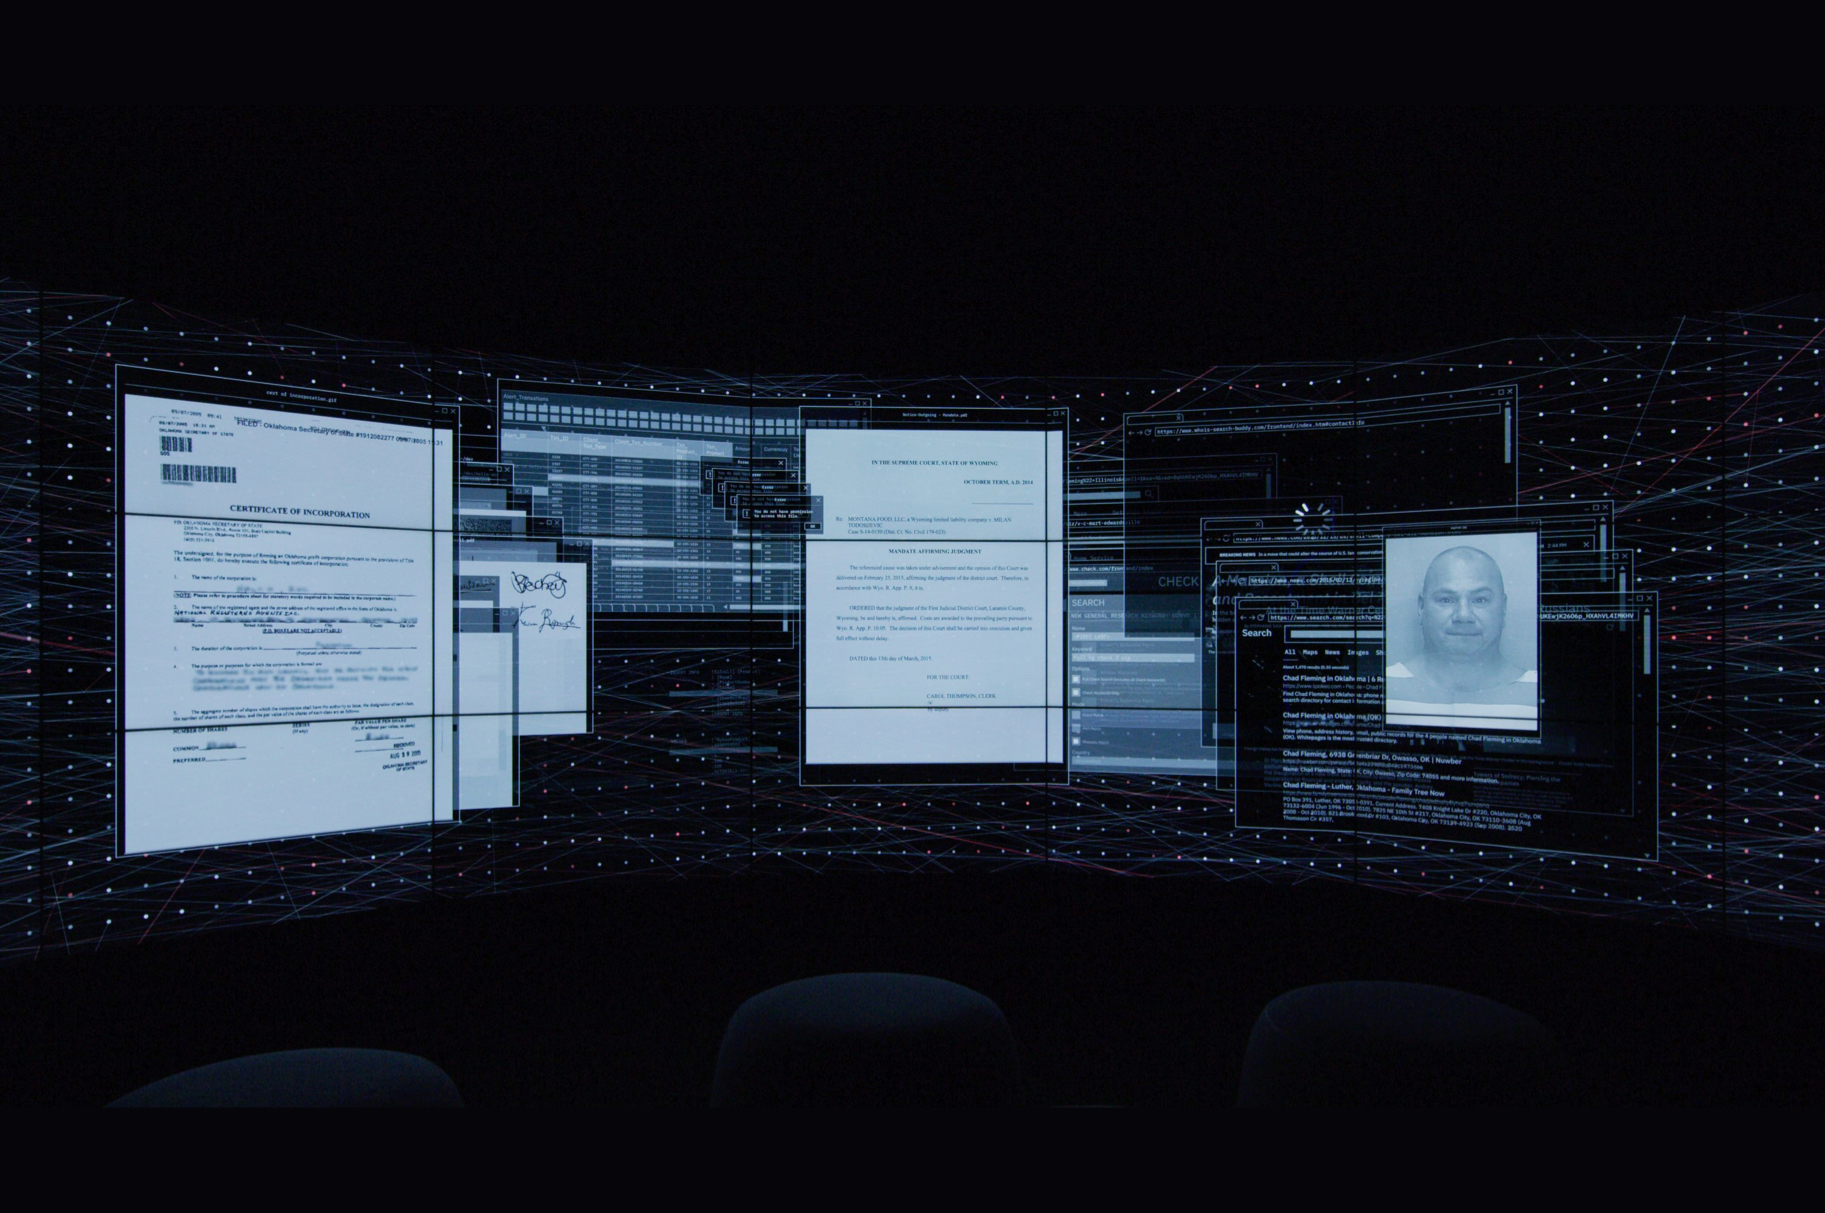 Experience image showing financial crime evidence in 3D space